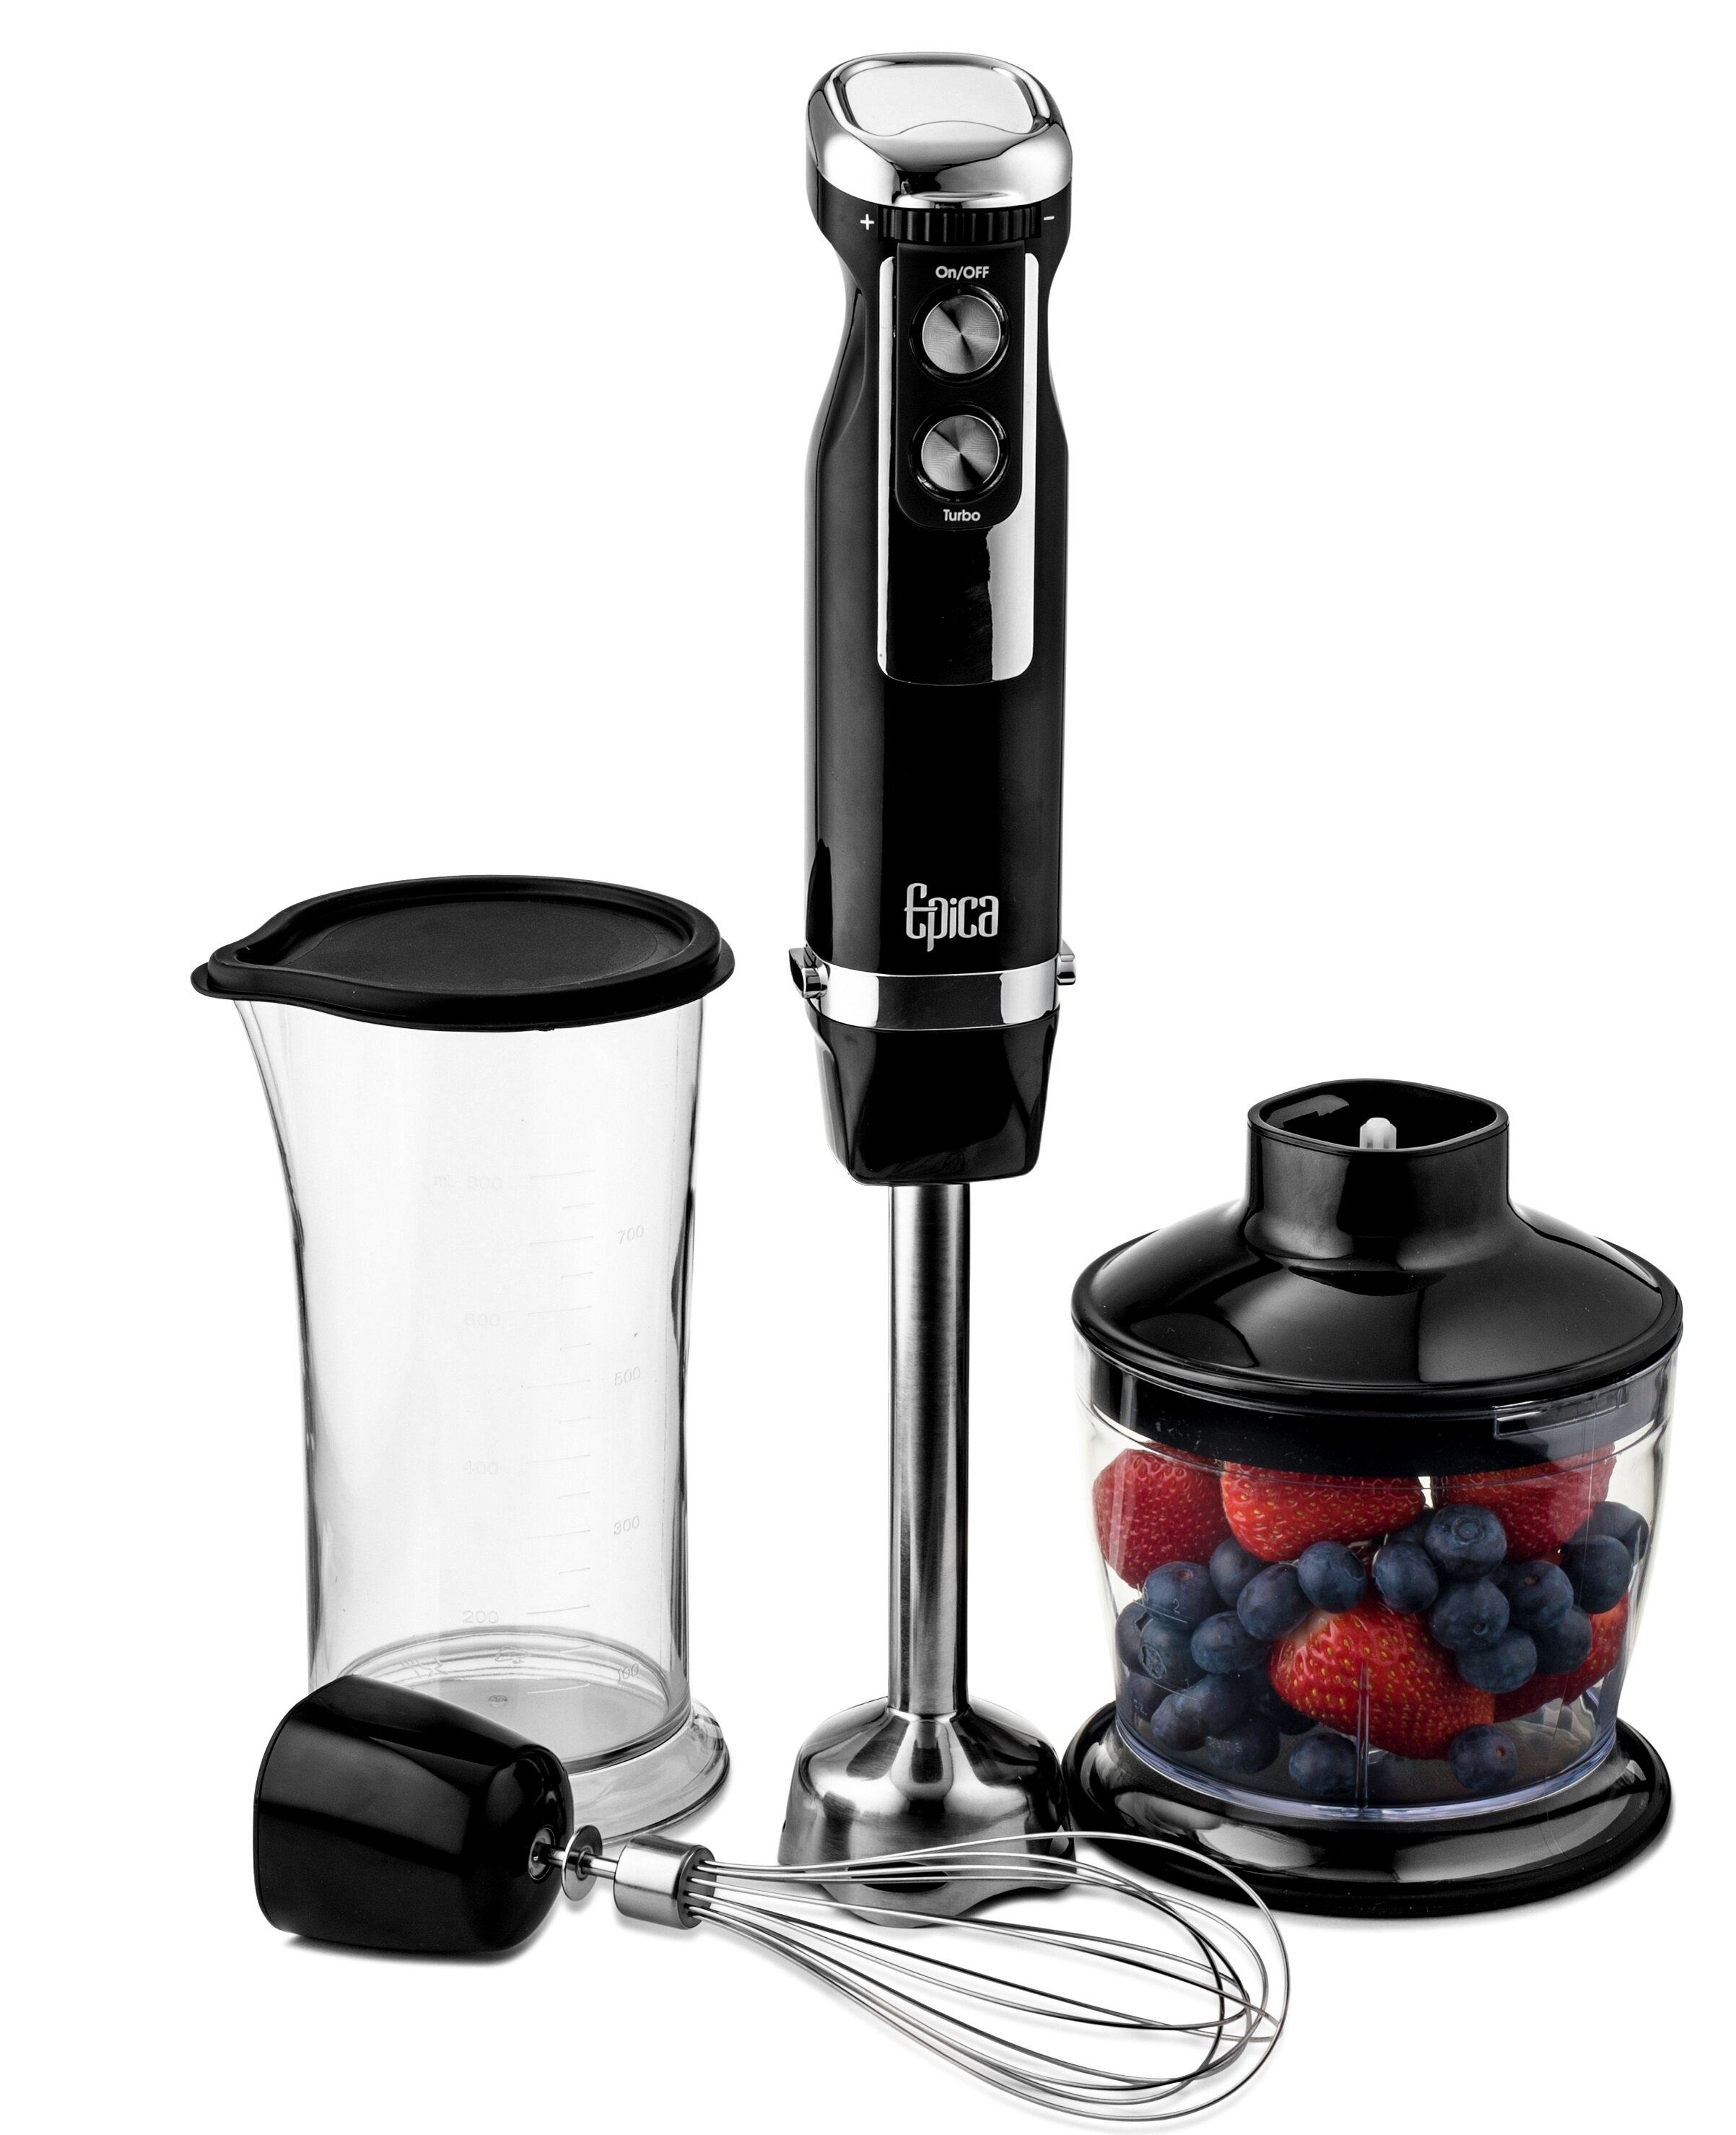 Epica 4 in 1 Heavy Duty Hand Blender & Reviews